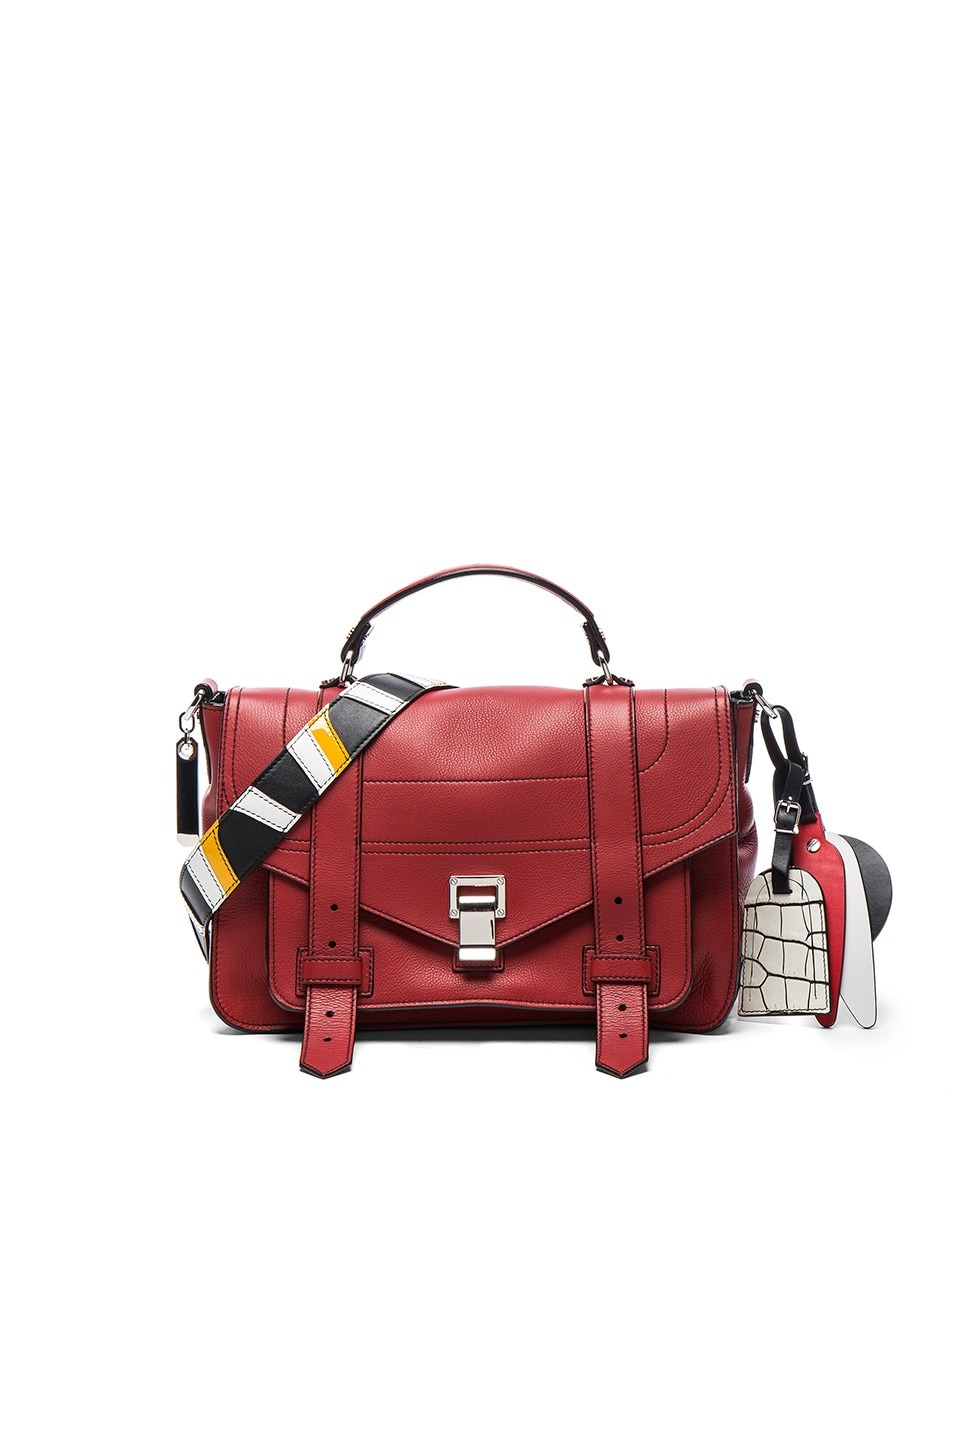 Image 1 of Proenza Schouler Medium PS1+ in Brick